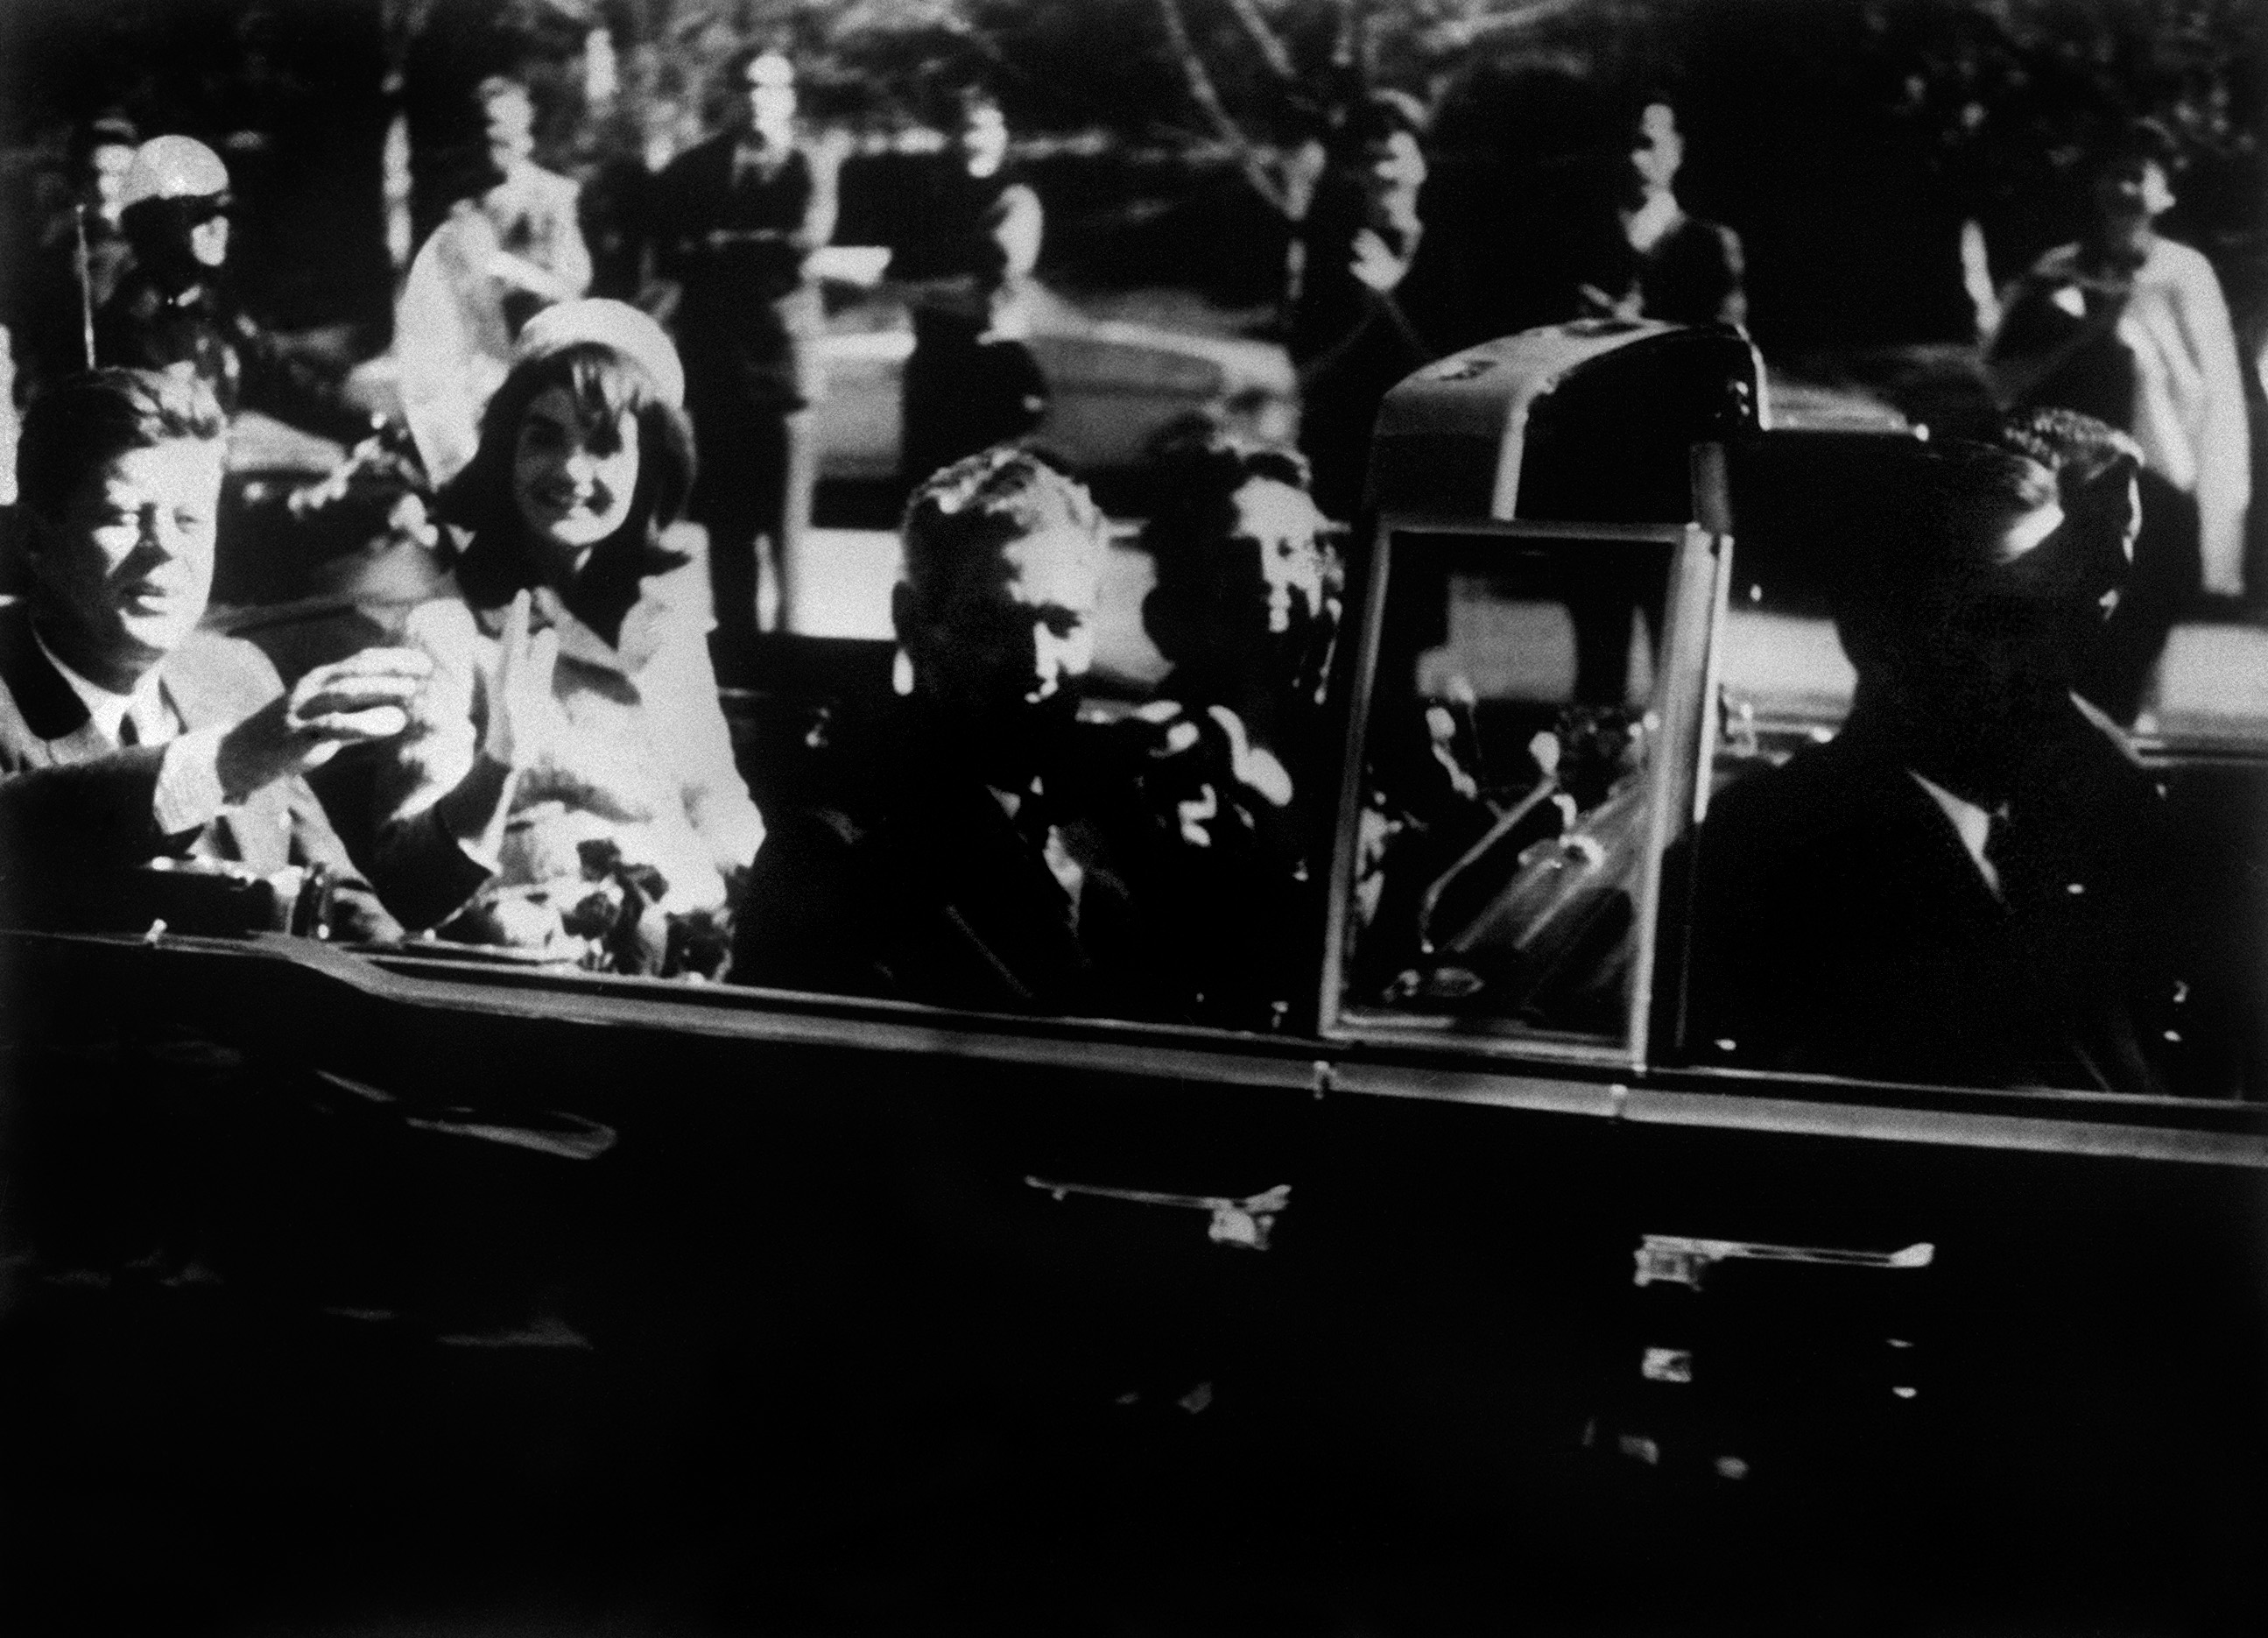 Tune in to hear the latest batch of JFK tapes